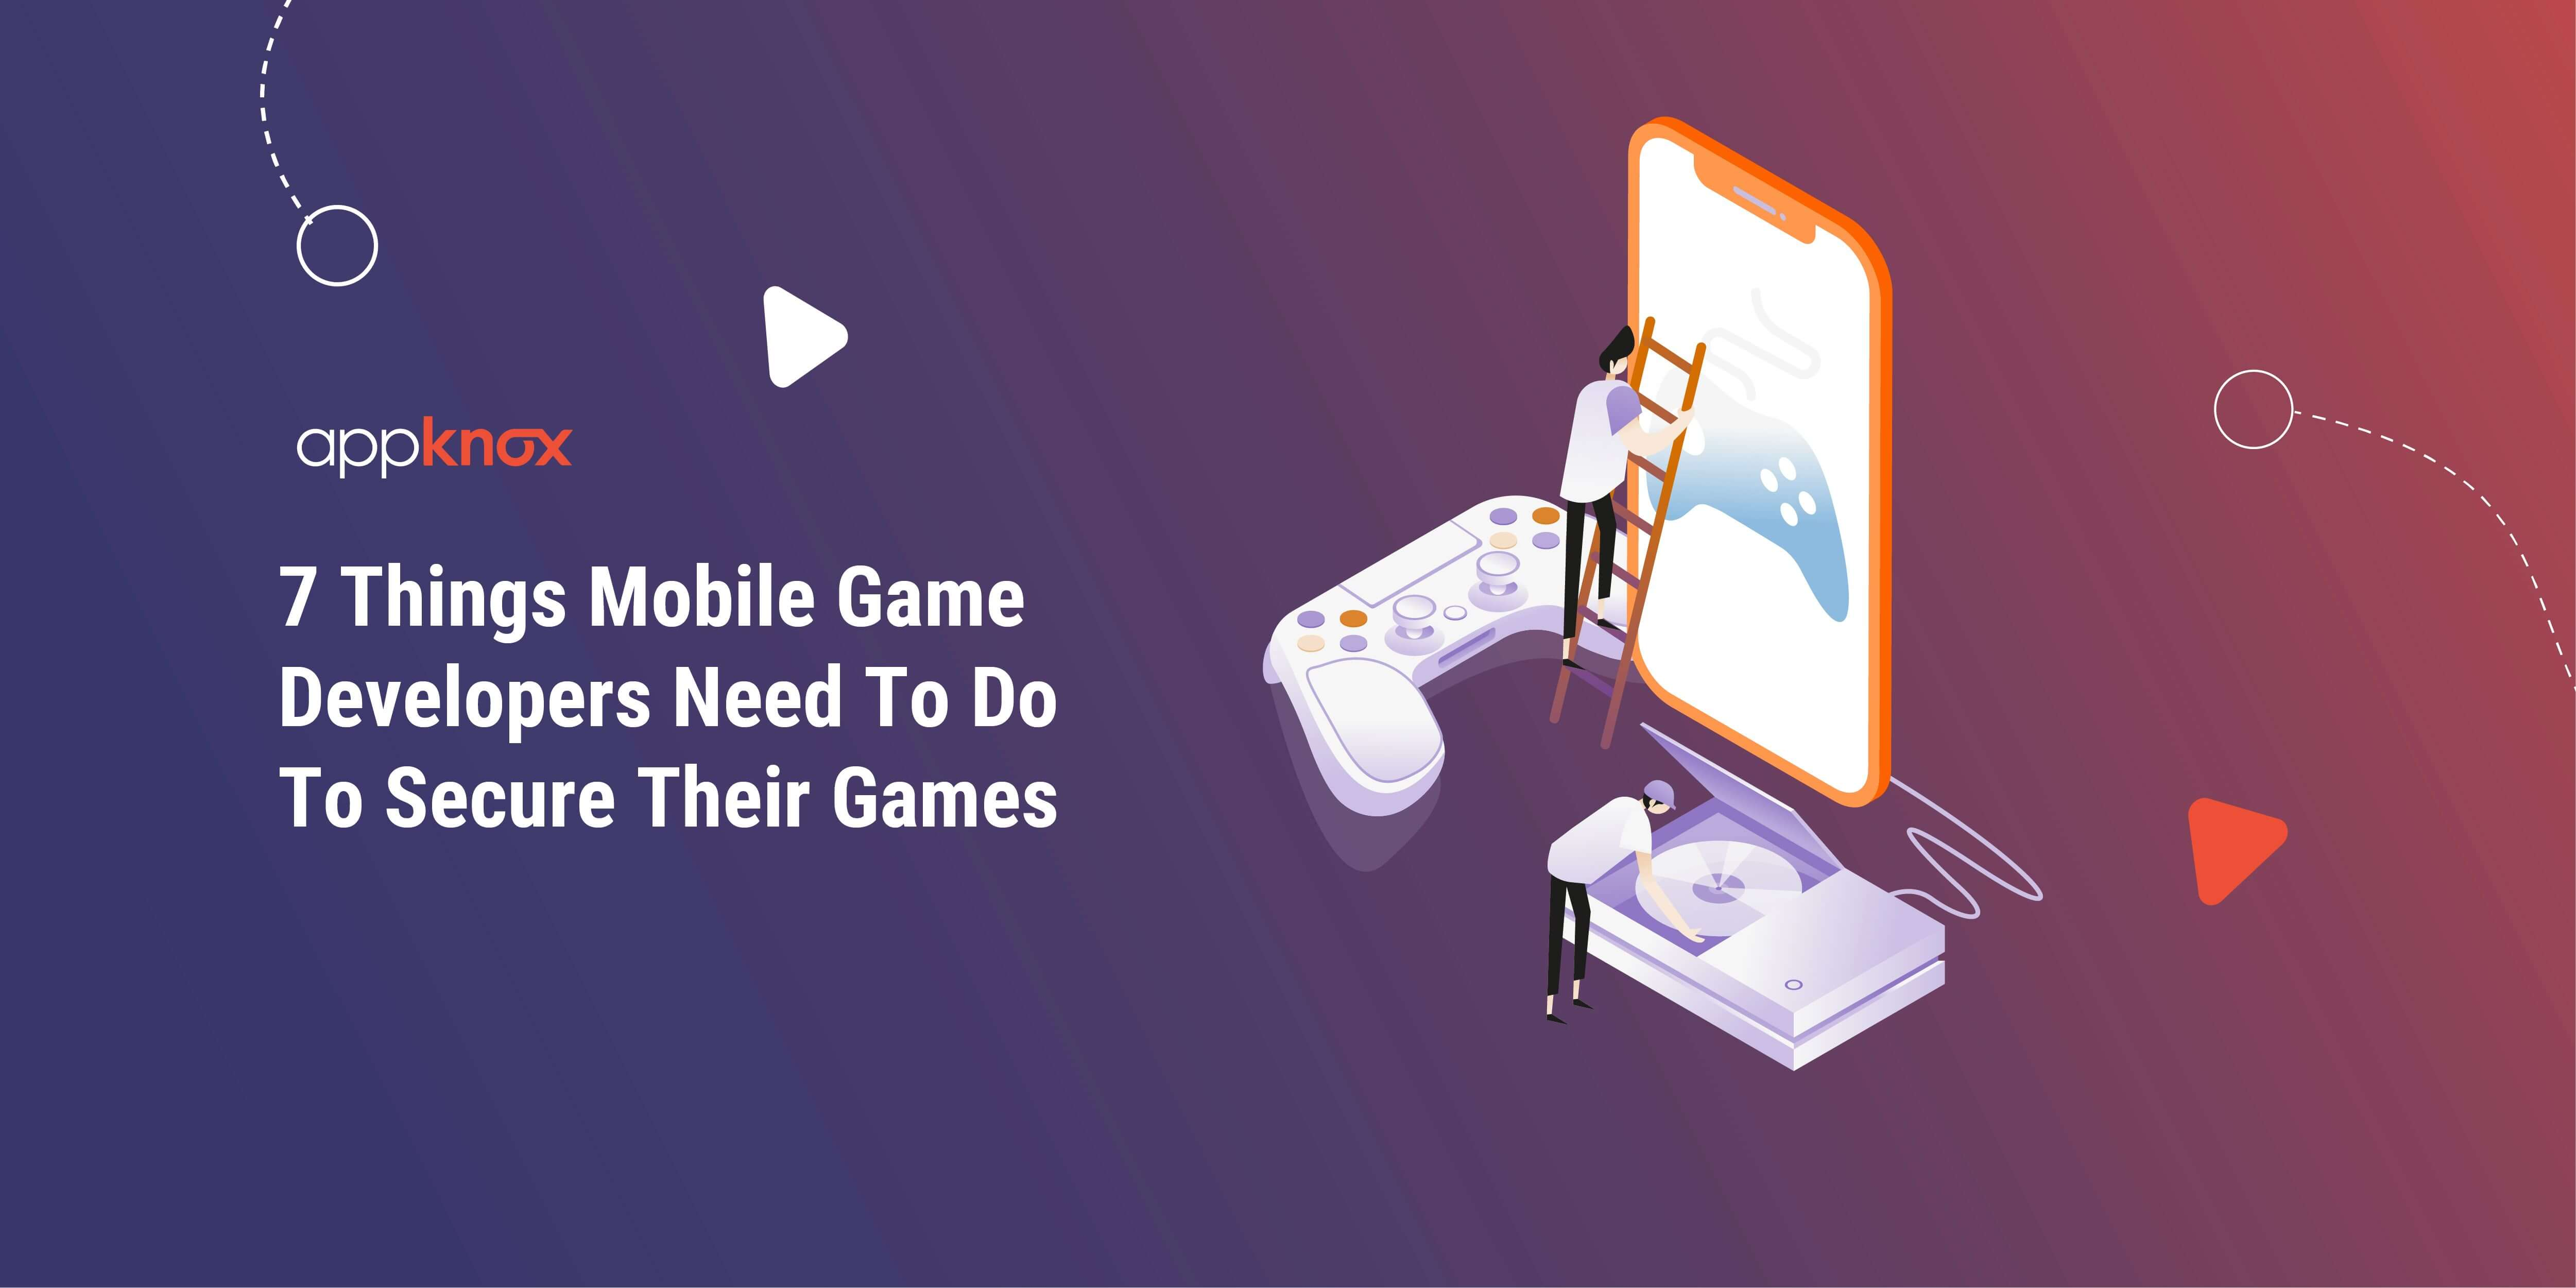 10 Things Mobile Game Developers Need To Do To Secure Their Games